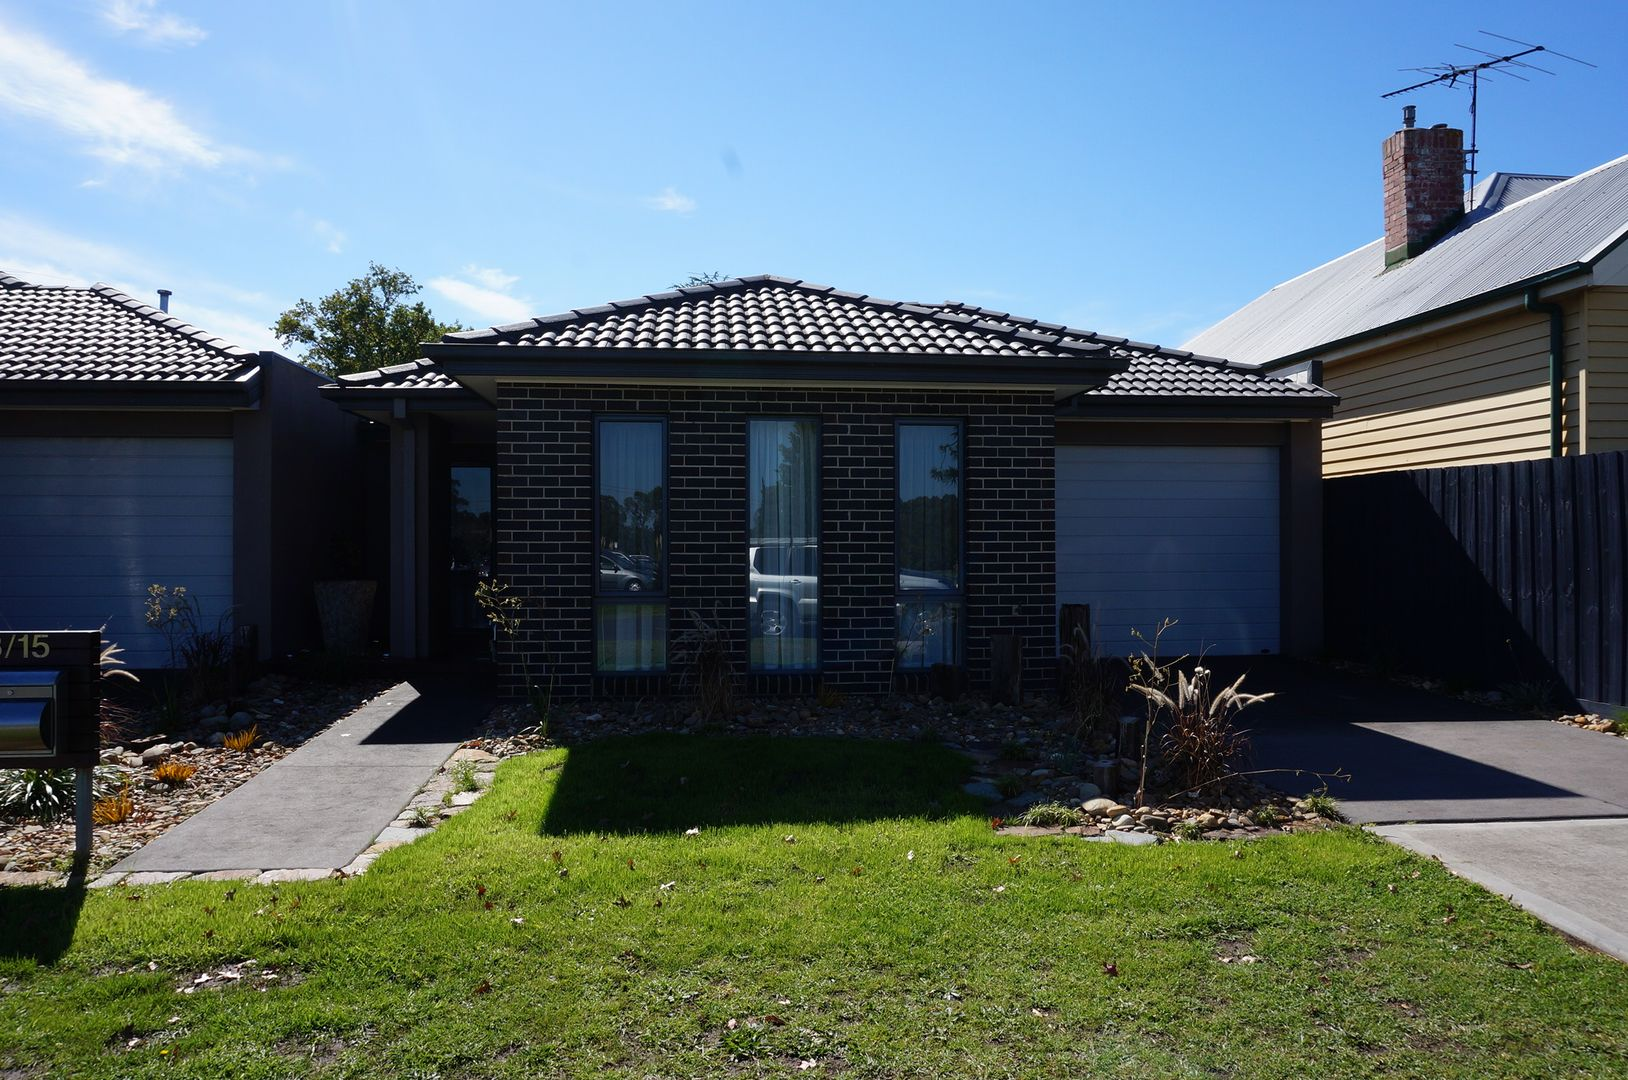 3/15 Beaconsfield Avenue, Beaconsfield VIC 3807, Image 1